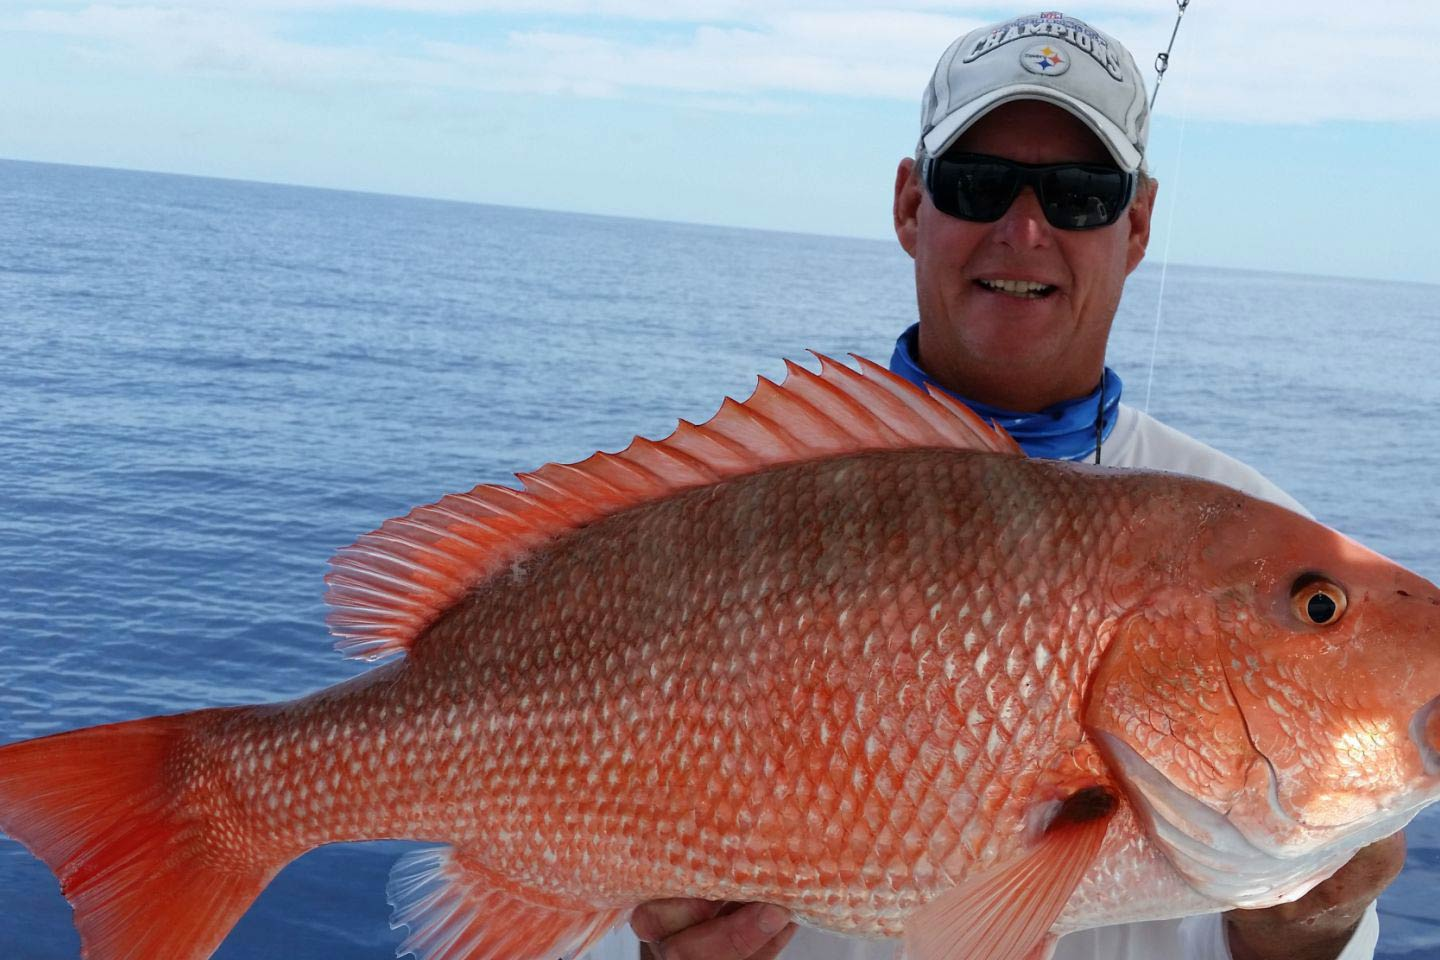 A man holds a large Red Snapper up the camera, with the Gulf of Mexico in the background